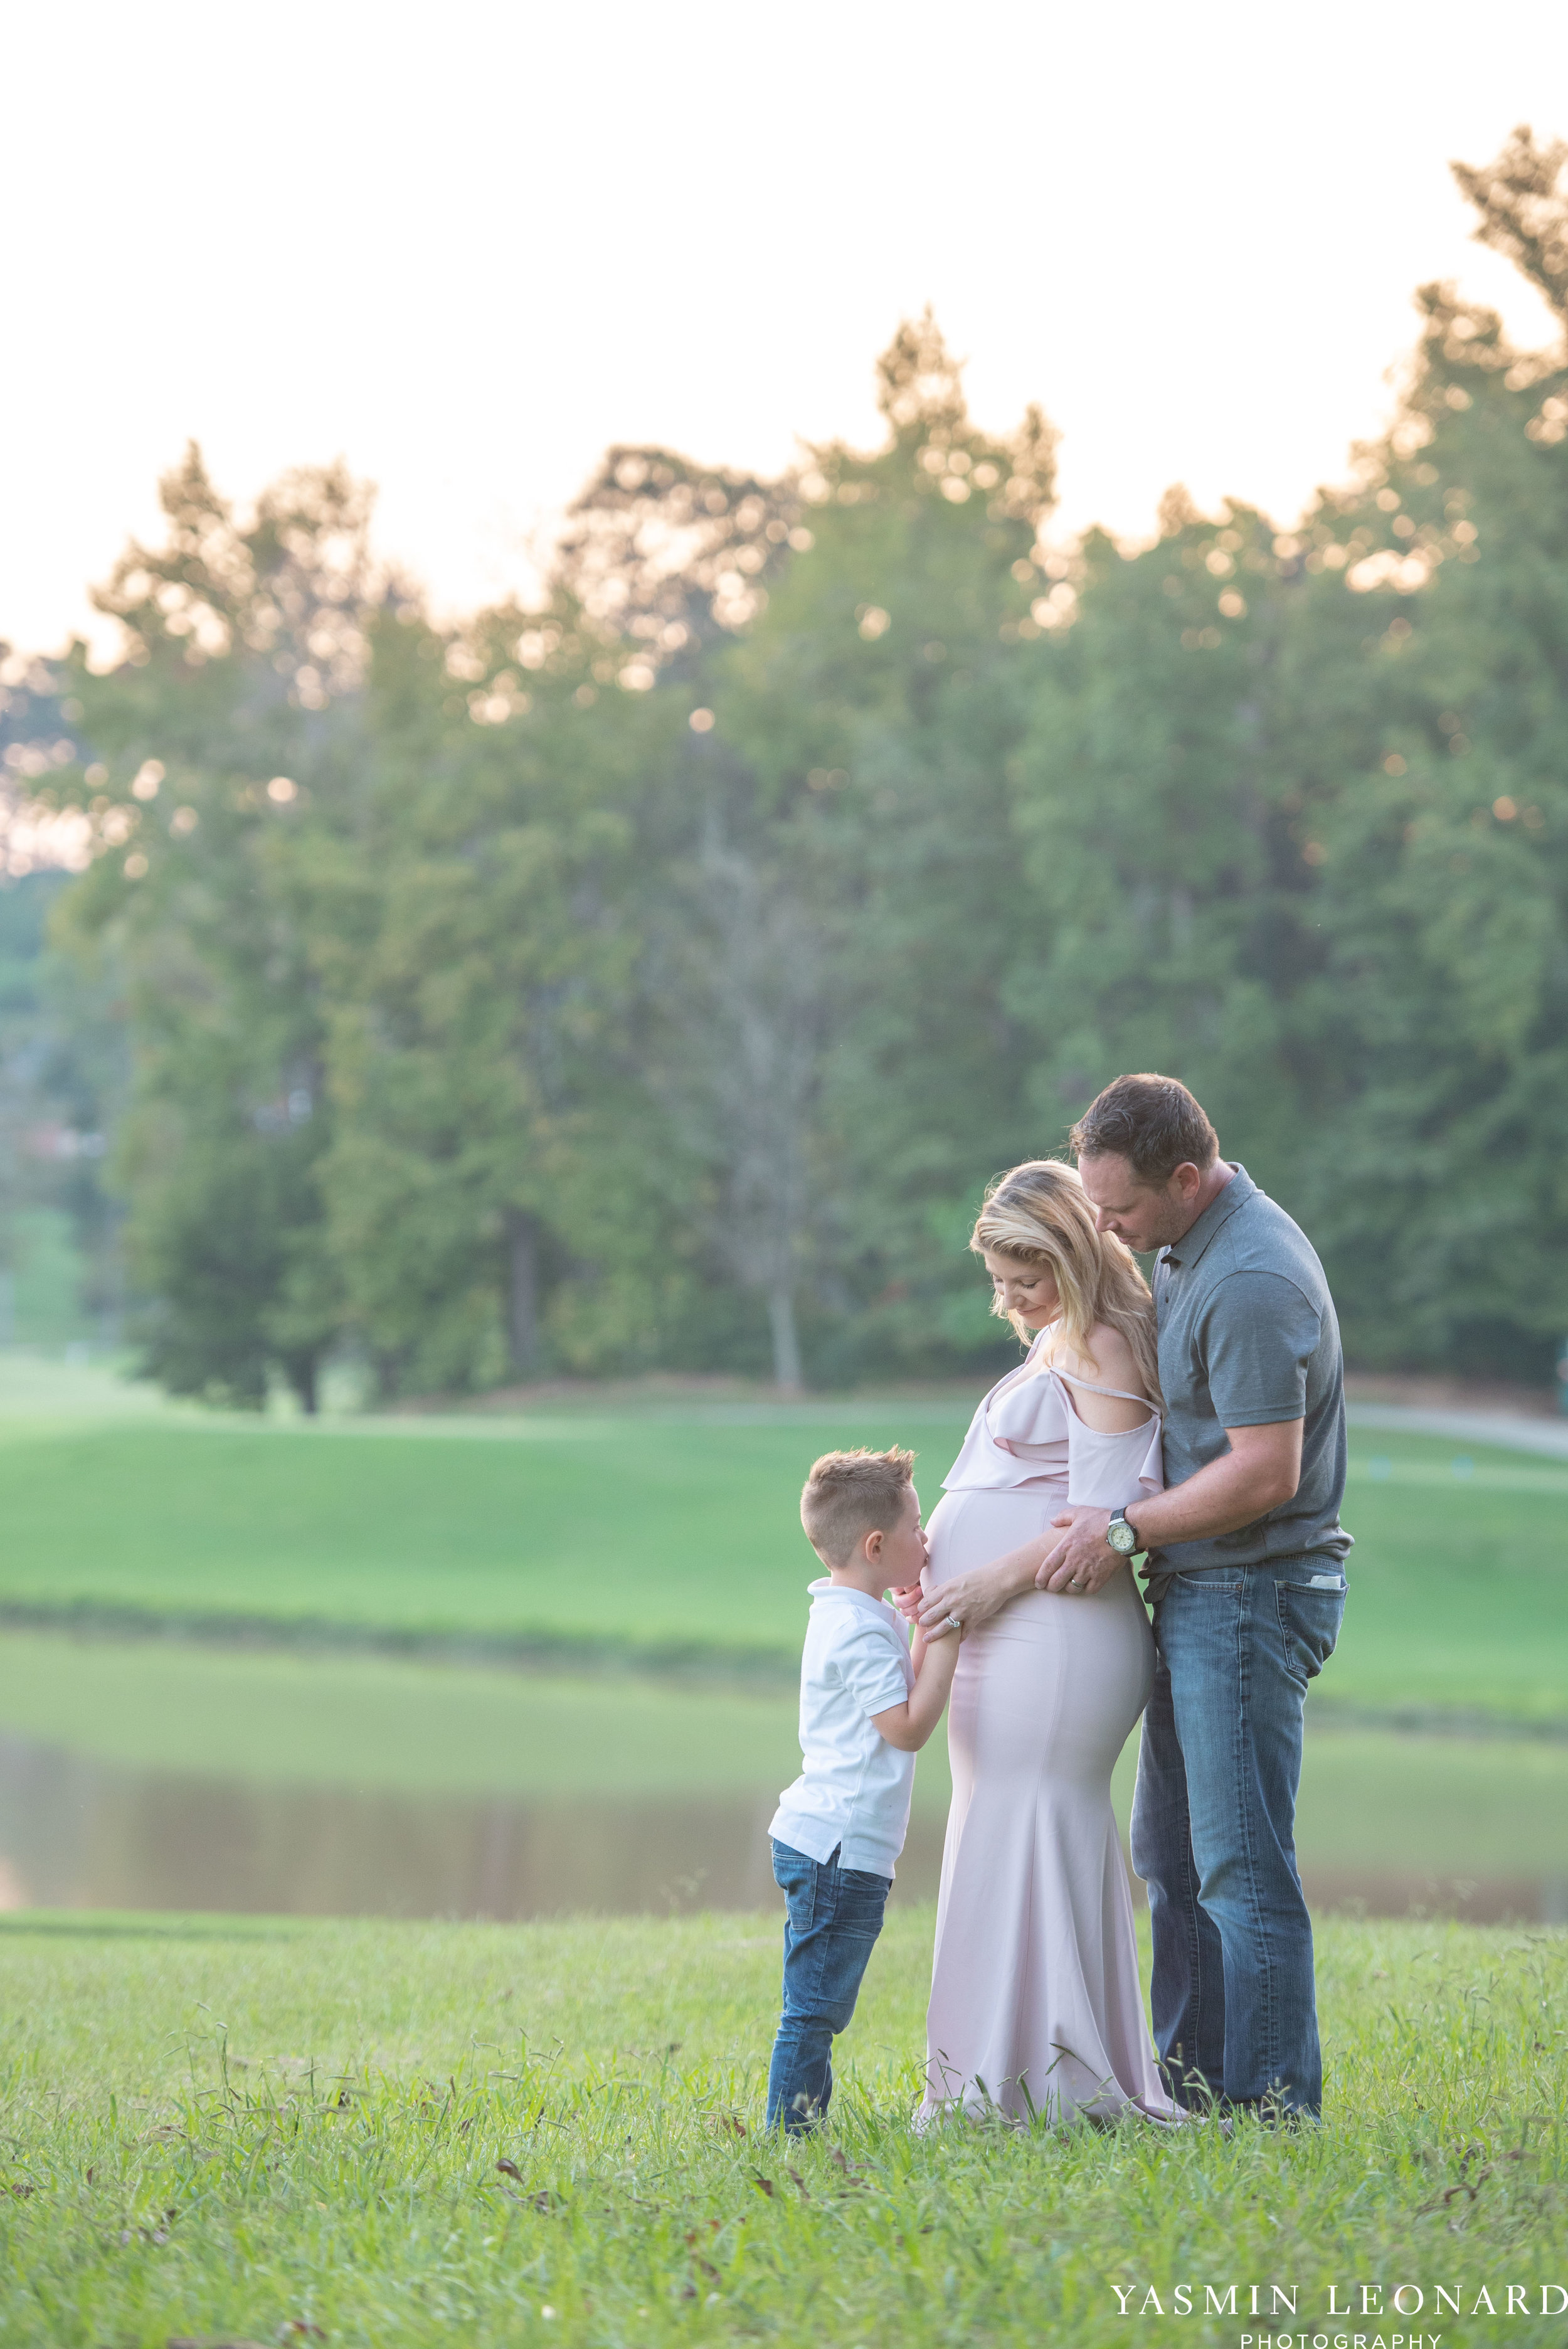 Maternity Session - High Point Maternity Session - NC Family Photographer - NC Photographer - High Point Photographer - Maternity Ideas - Yasmin Leonard Photography-13.jpg